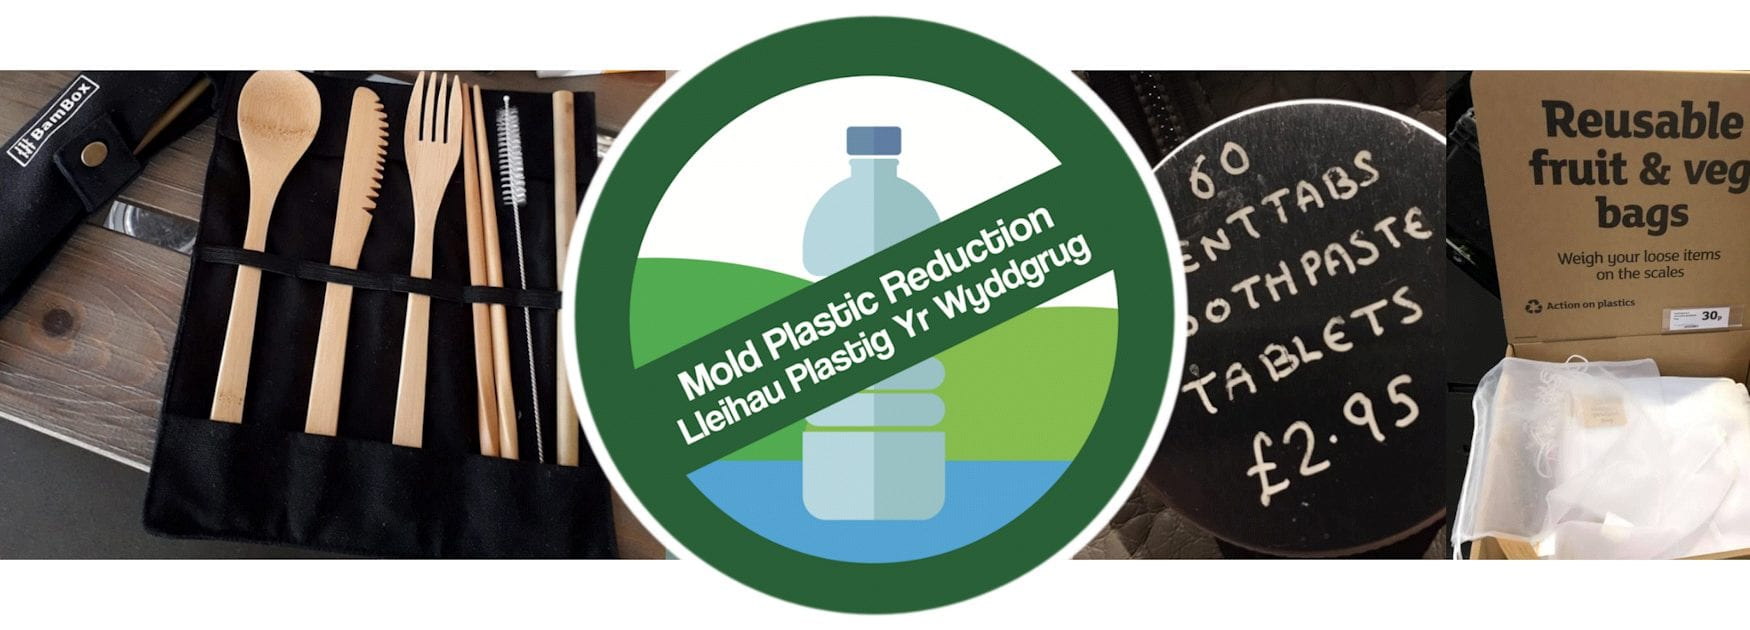 Header image for At Home page showing non-plastic alternatives to household products